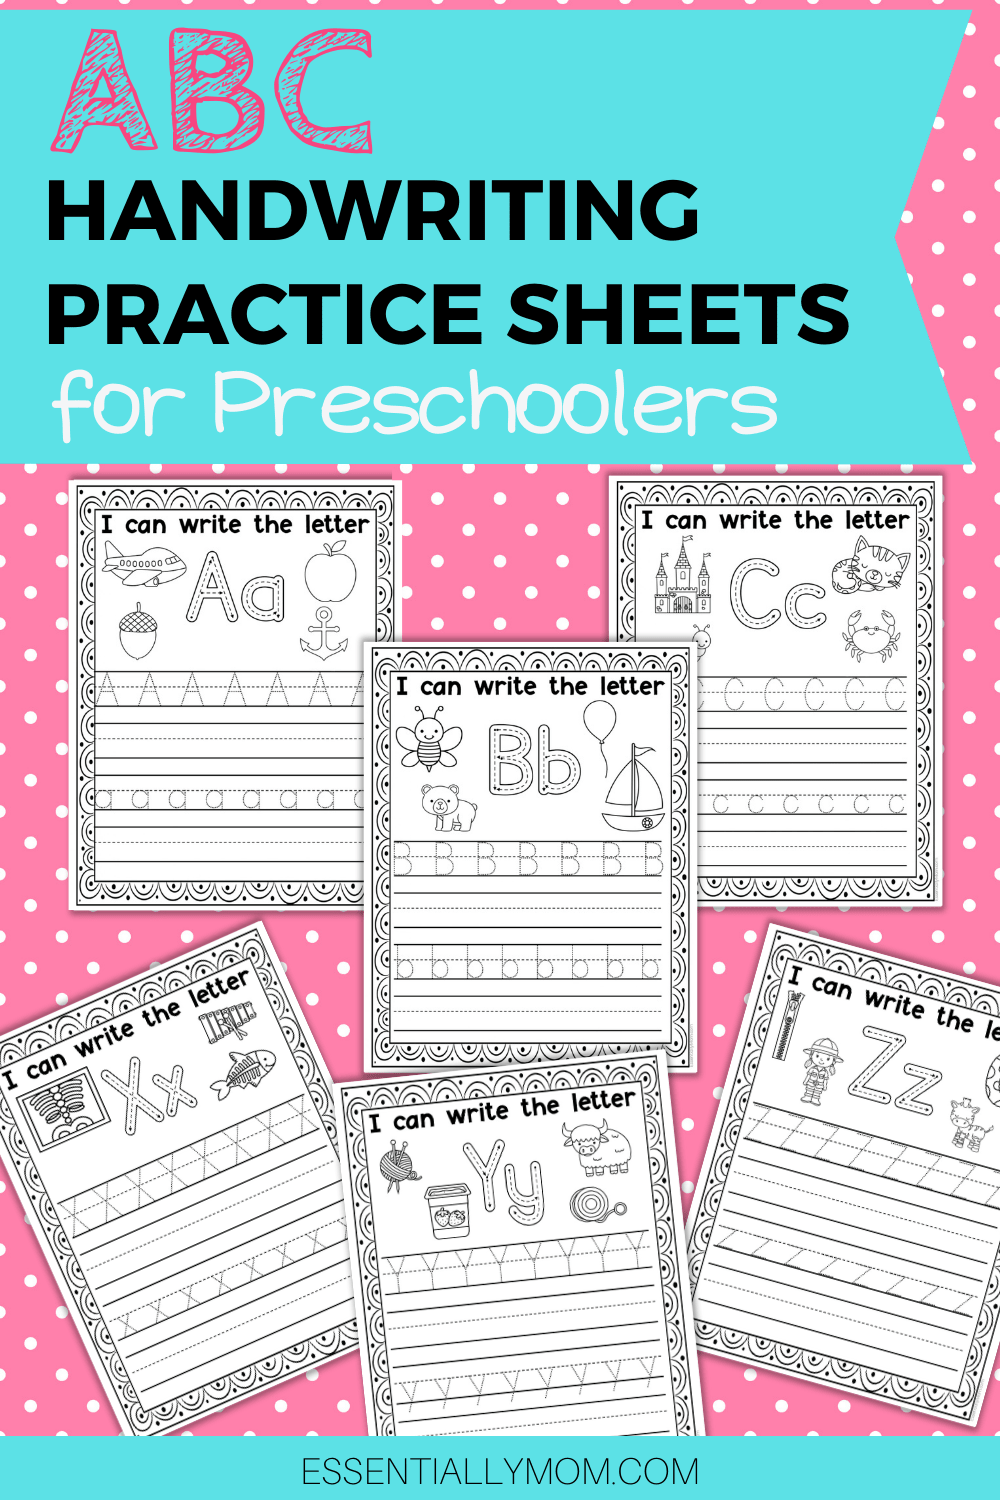 abc handwriting practice worksheets,abc handwriting practice sheets,alphabet handwriting practice sheets,abc writing practice sheets,printable handwriting worksheets preschool,handwriting printables preschoolers,abc free printables practice sheets